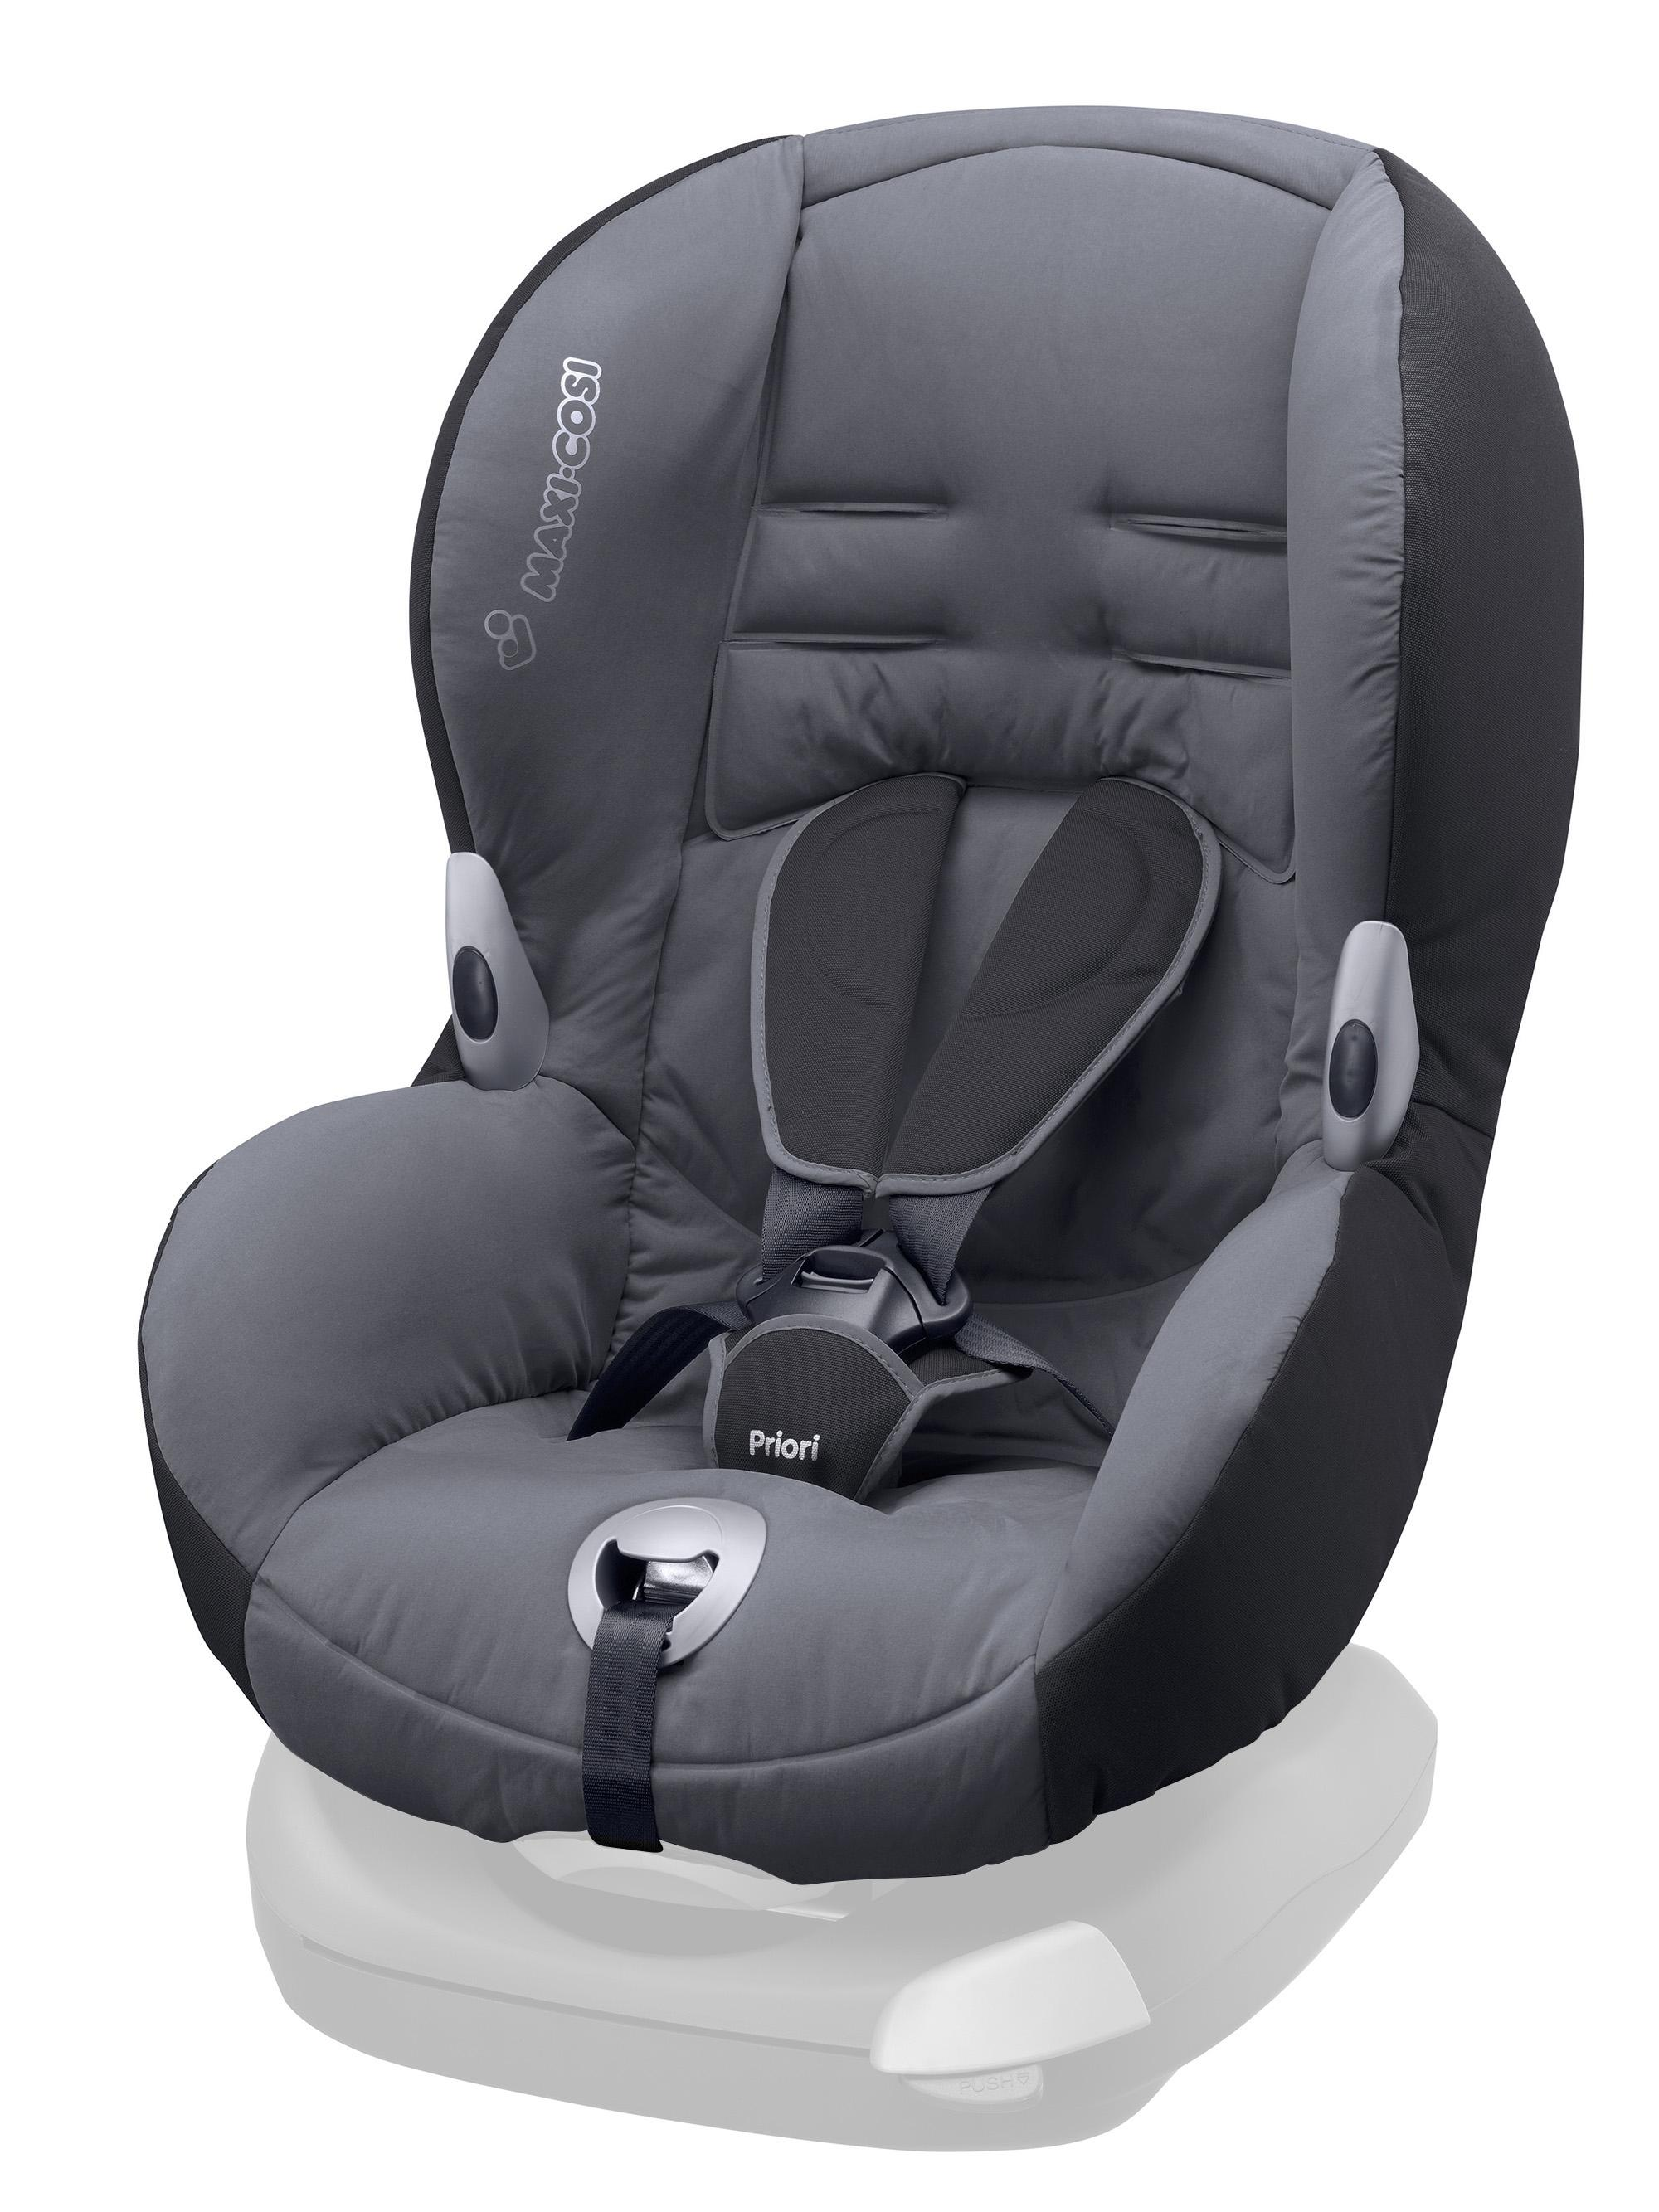 maxi cosi priori xp replacement seat cover solid grey baby. Black Bedroom Furniture Sets. Home Design Ideas